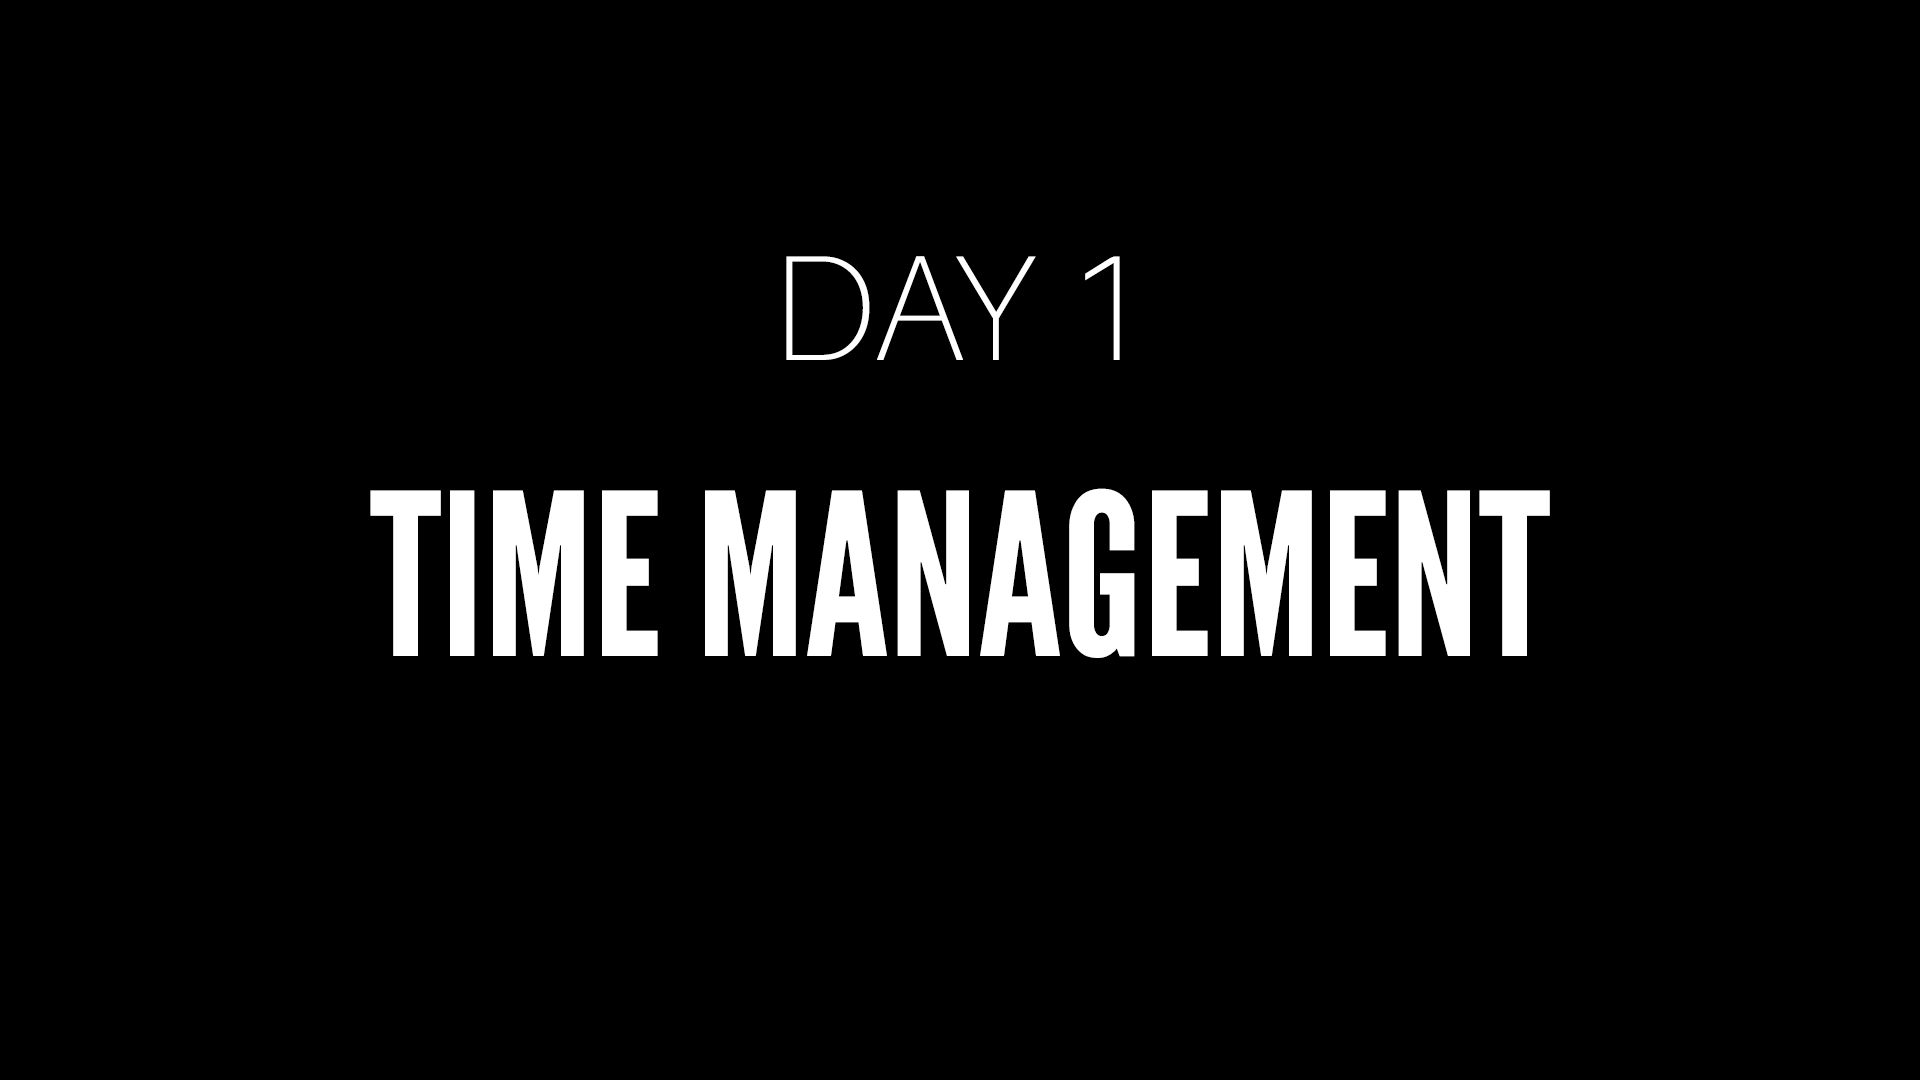 Day 1-Time Management.jpg